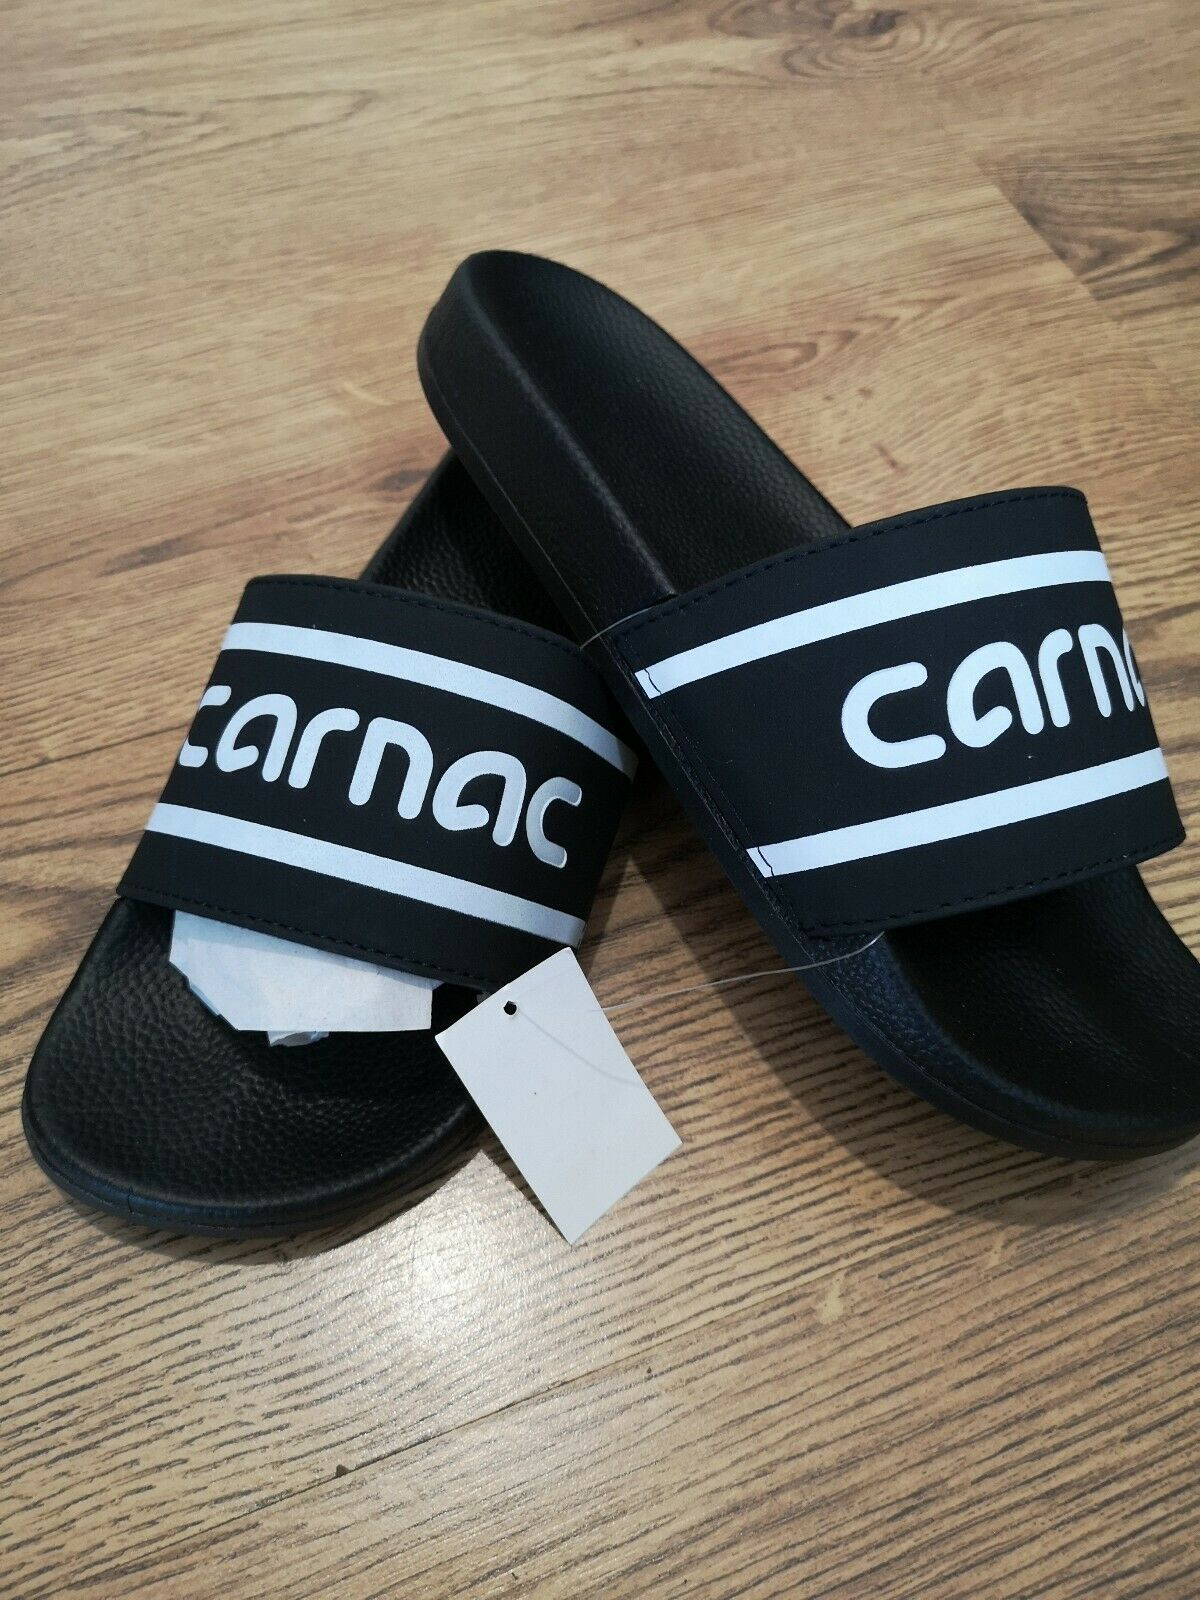 New Cheap Carnac comfort Slides Size 8uk 42eur Black With Cool Logo On Front 💪